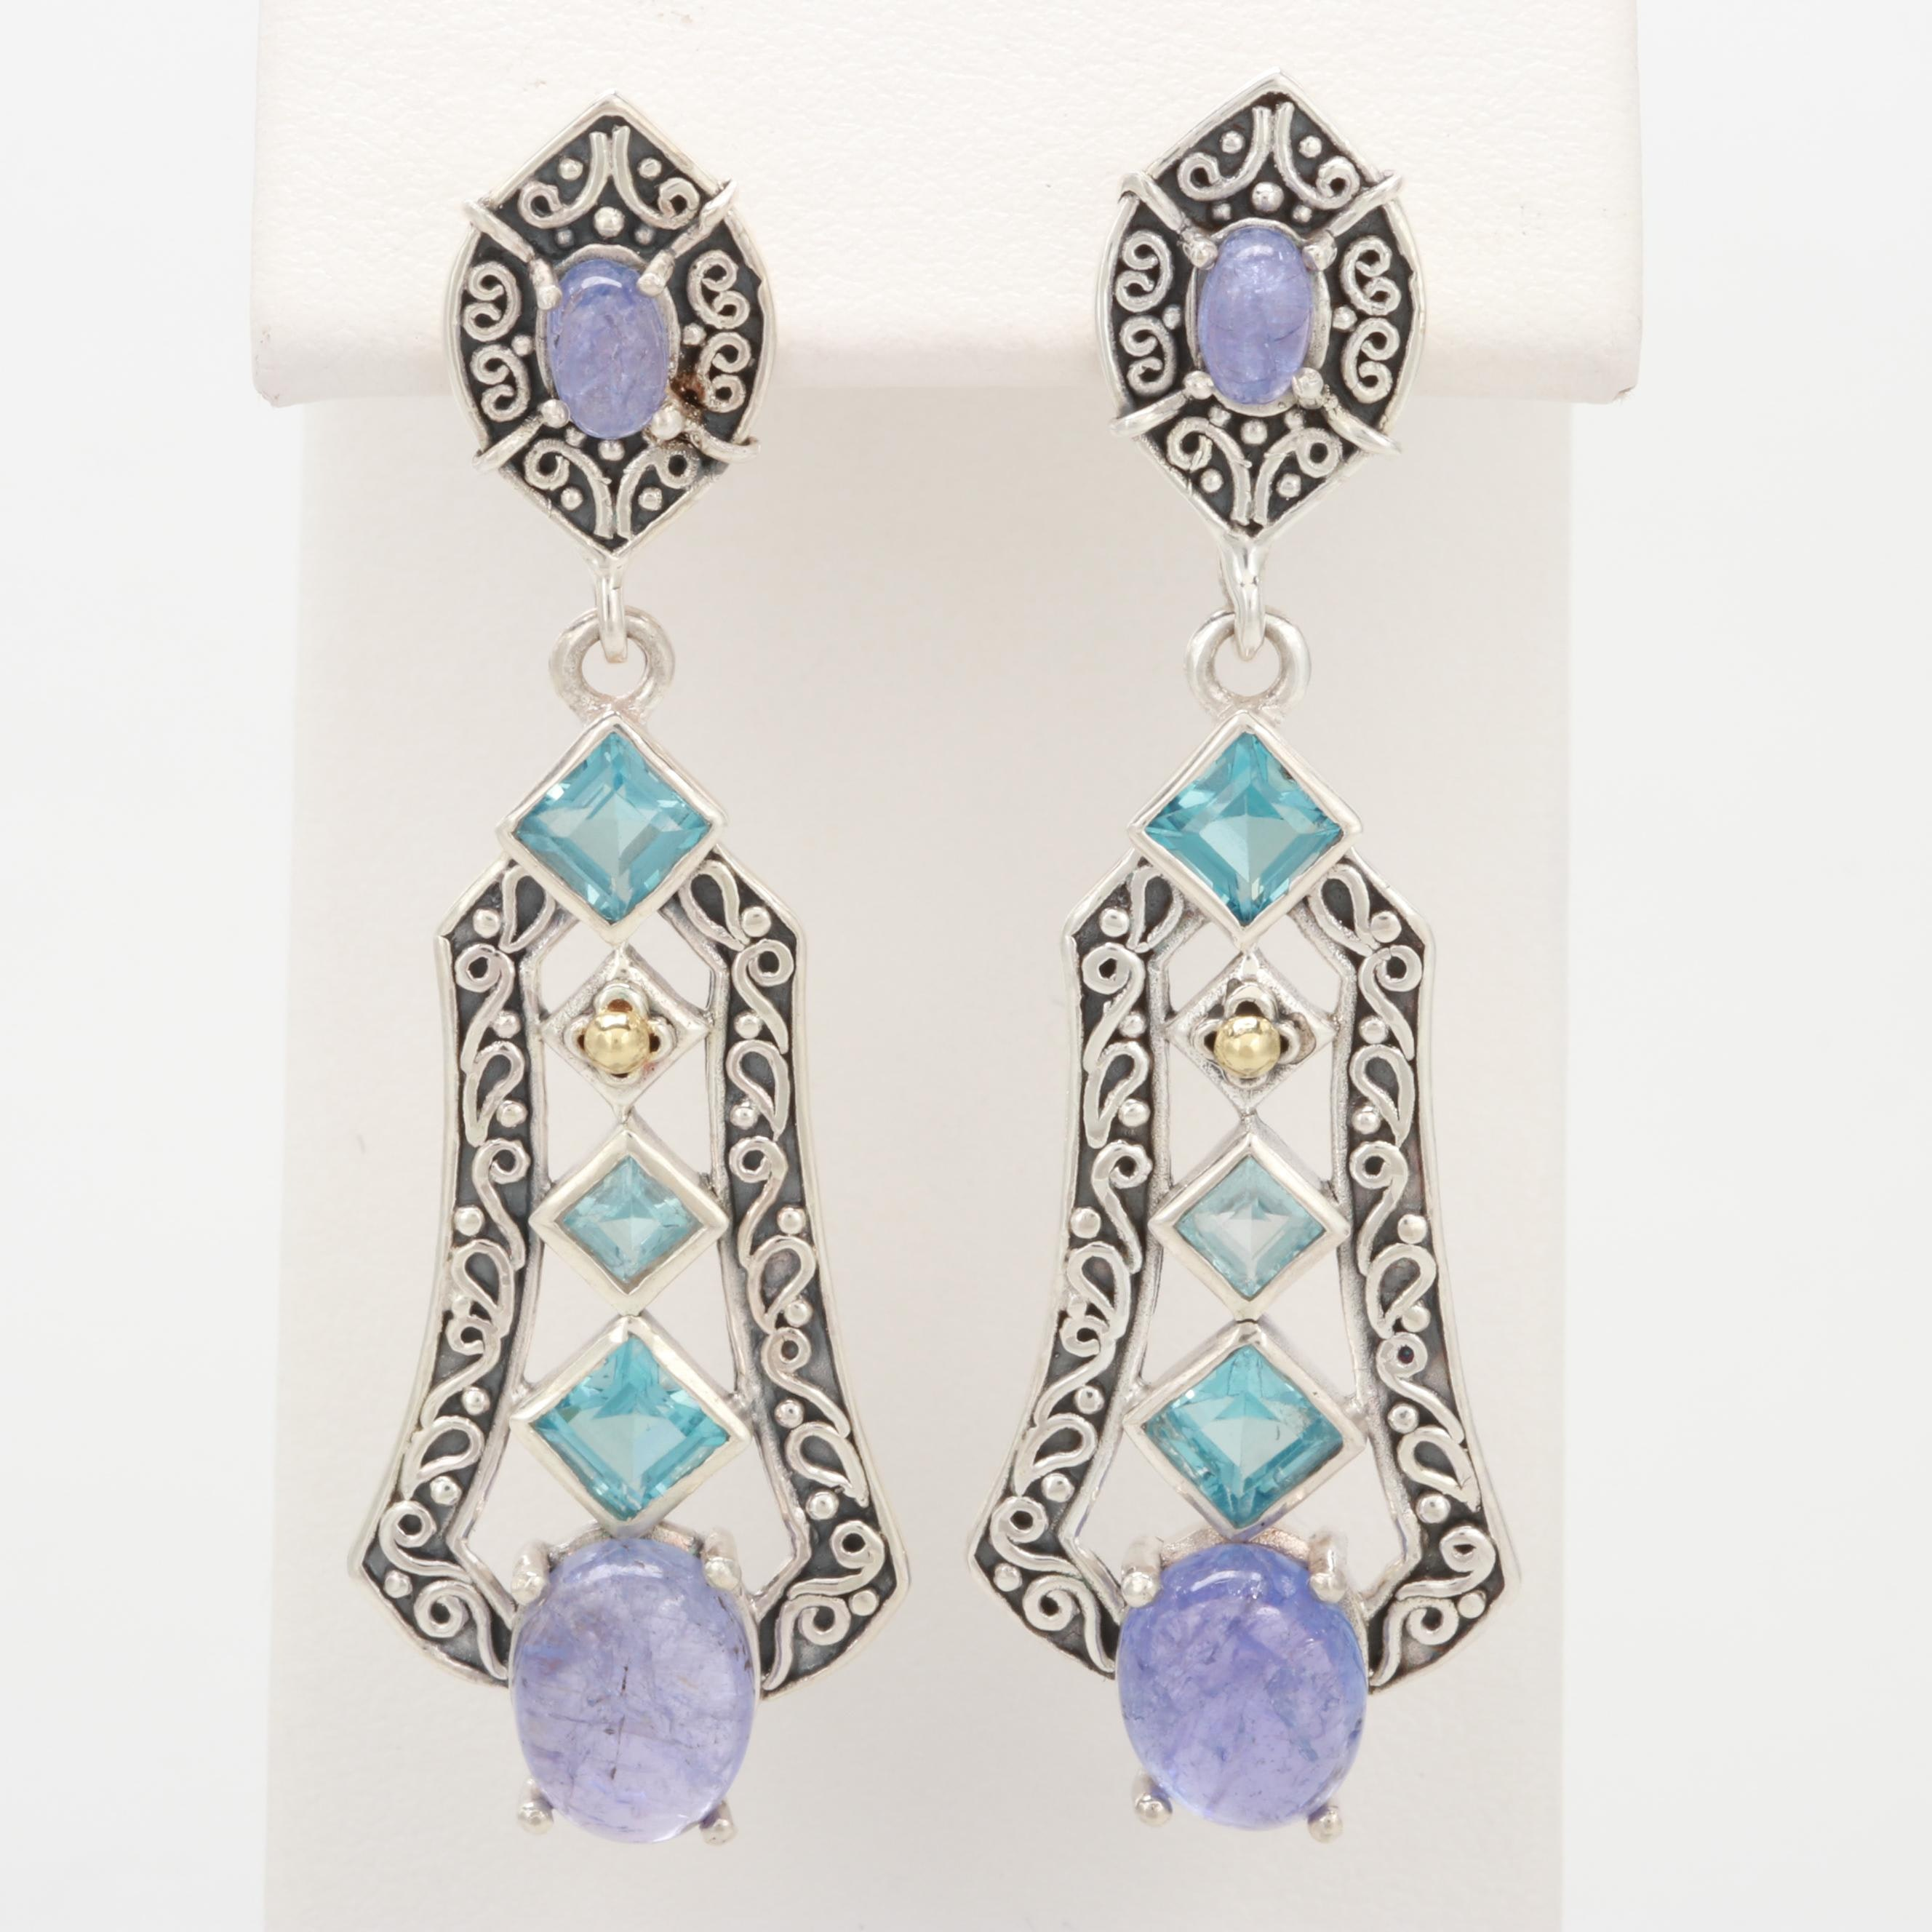 Robert Manse Sterling Silver Topaz and Tanzanite Earrings with 18K Yellow Gold